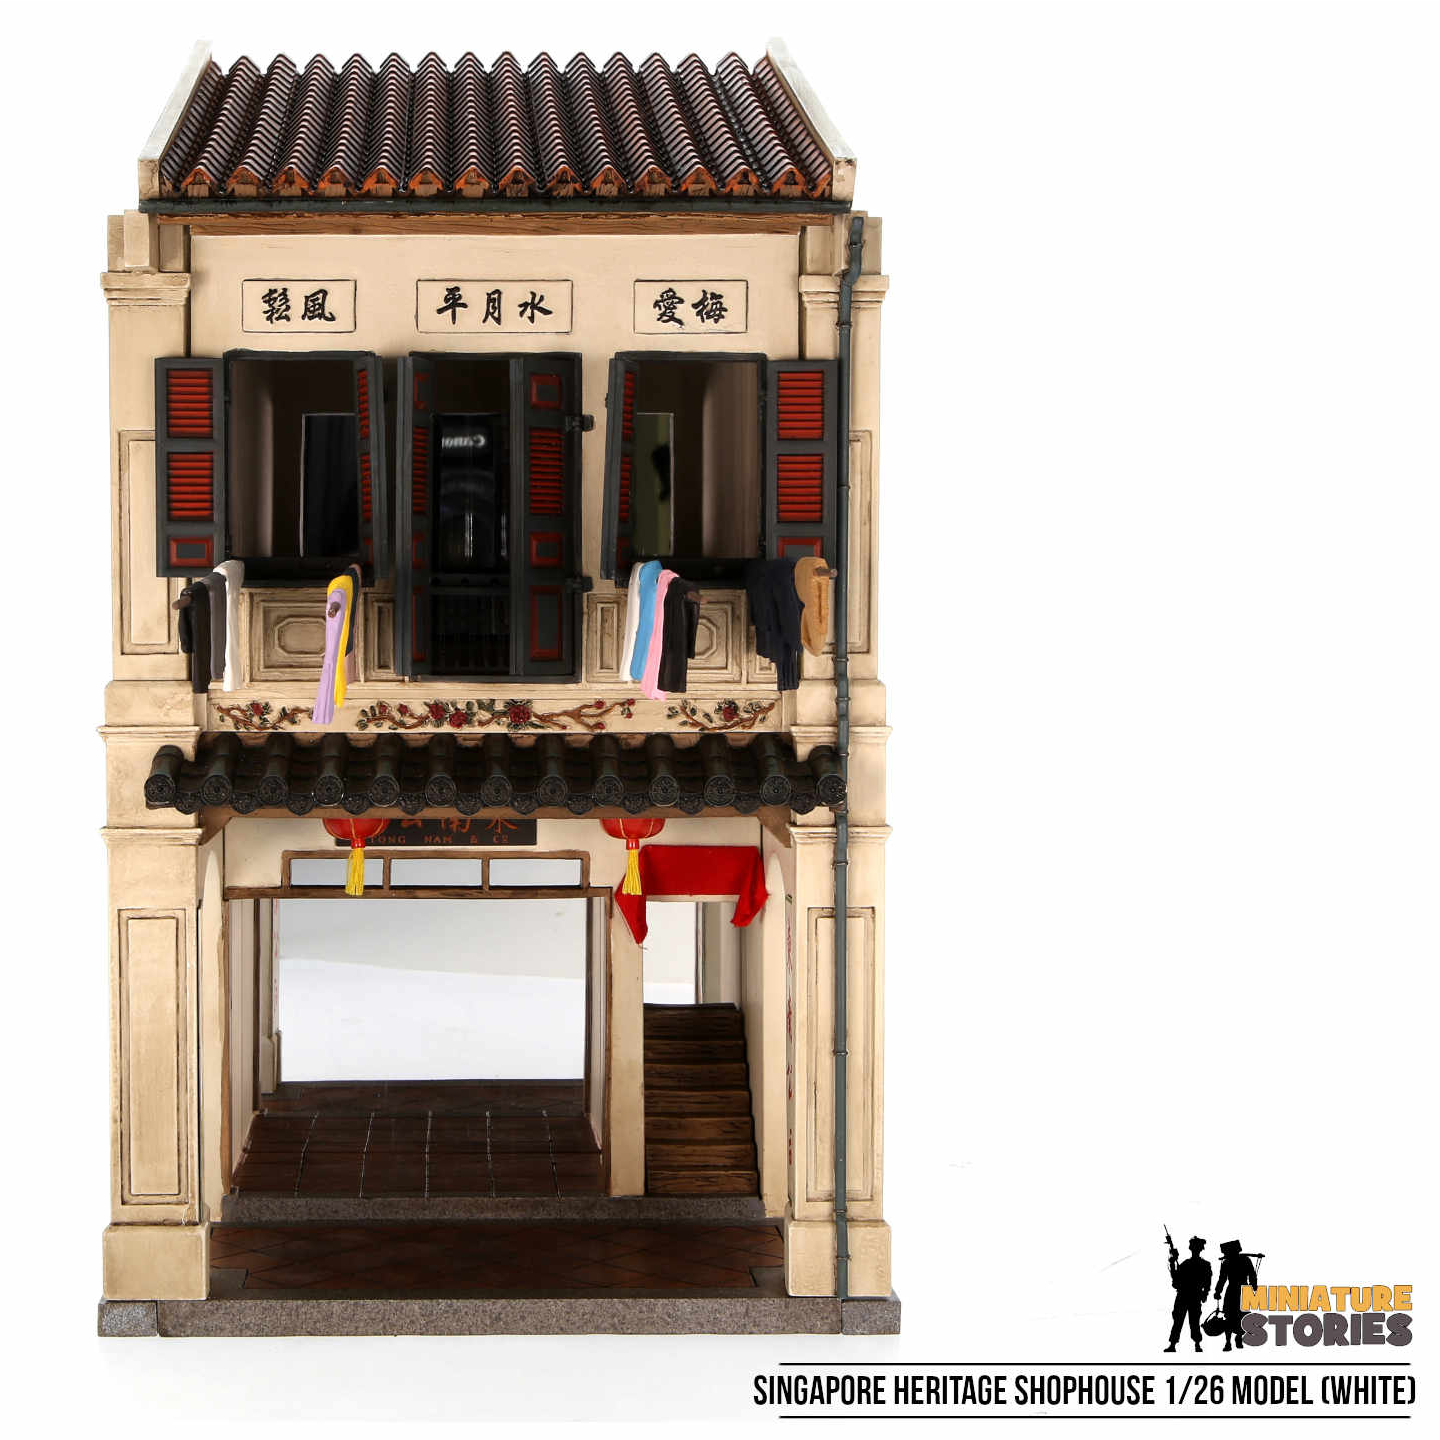 Singapore Heritage Shophouse Model - White